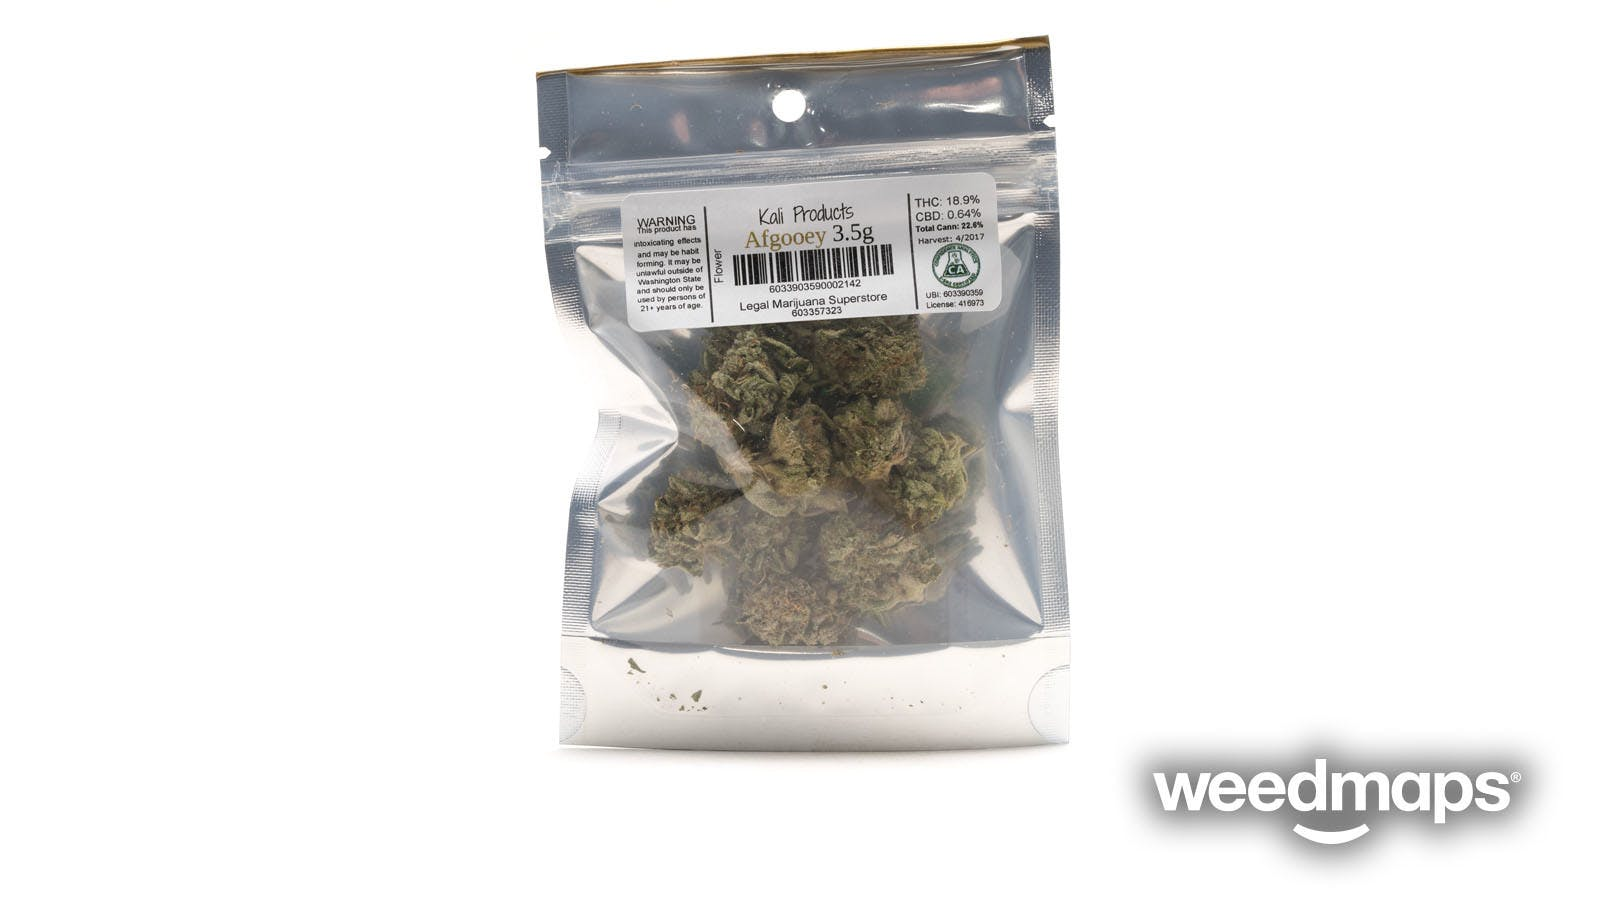 marijuana-dispensaries-legal-marijuana-superstore-in-port-orchard-afgooey